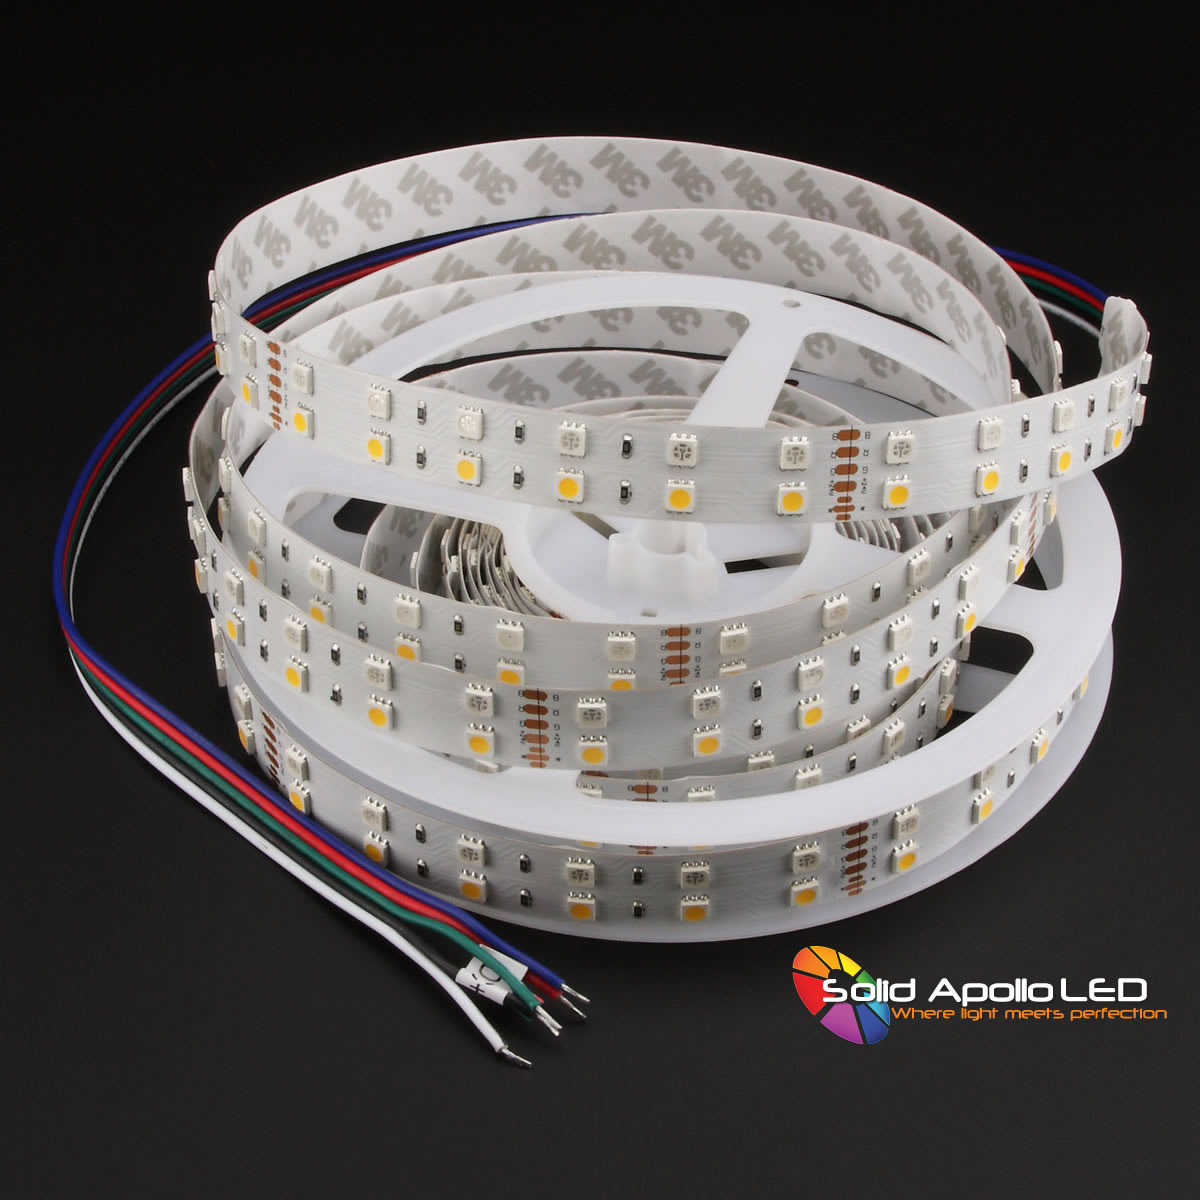 Solid Apollo Led Introduces Over 20 Different Types Of Rgb